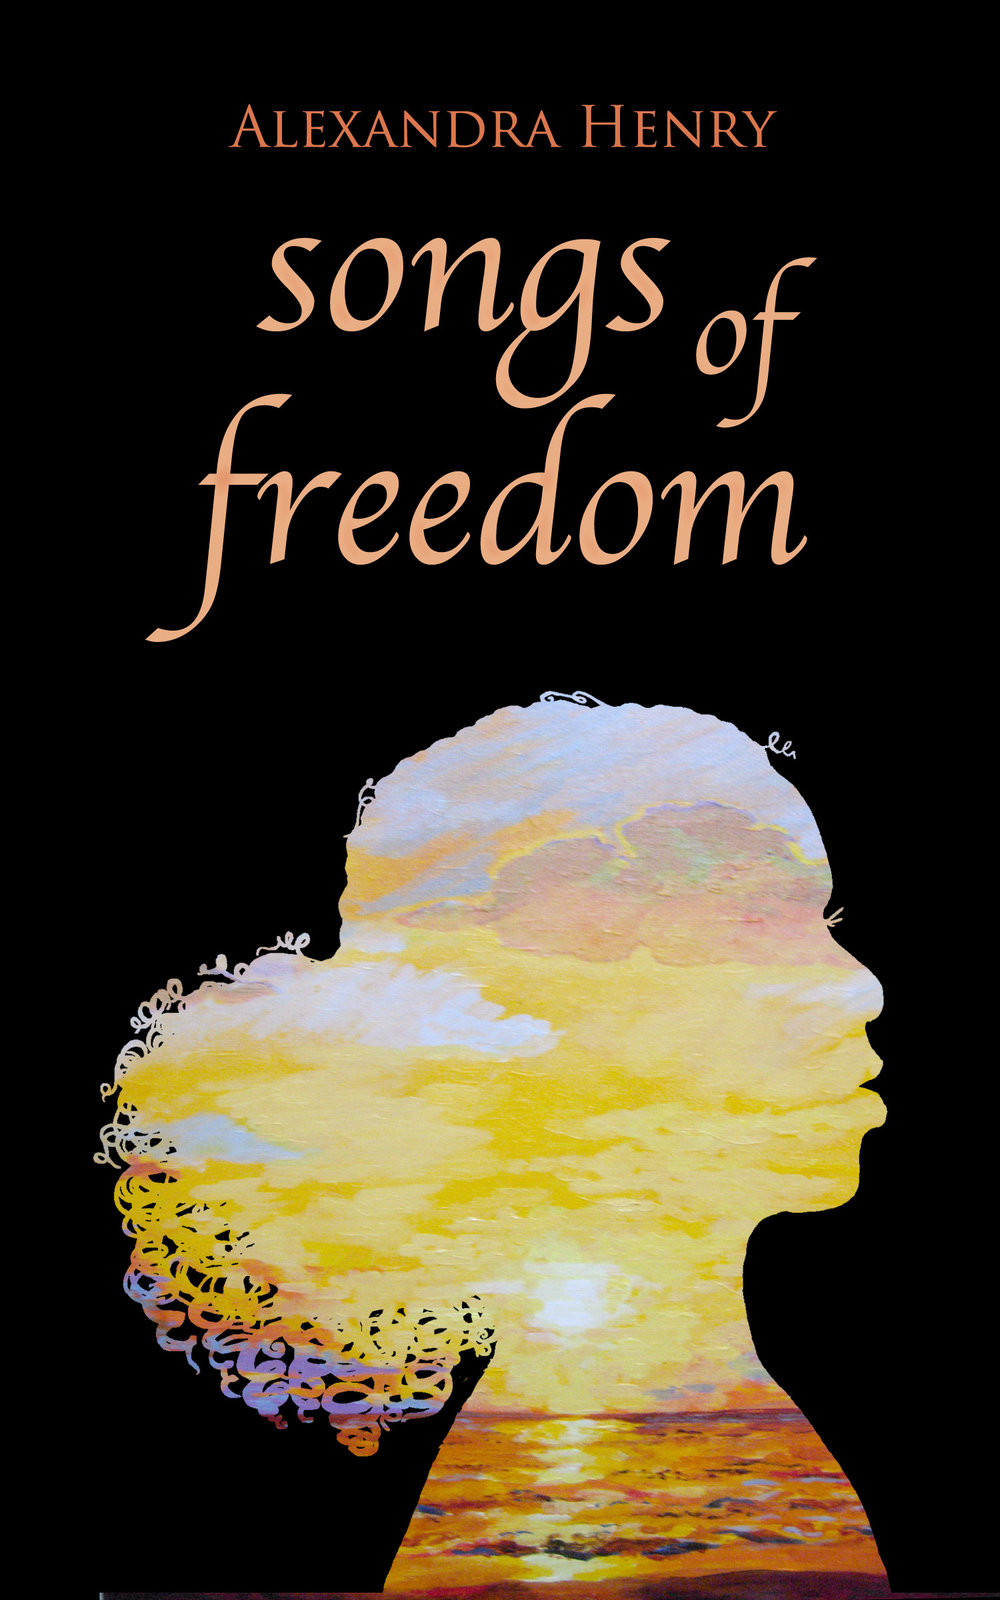 songs_freed_cover_front.jpg